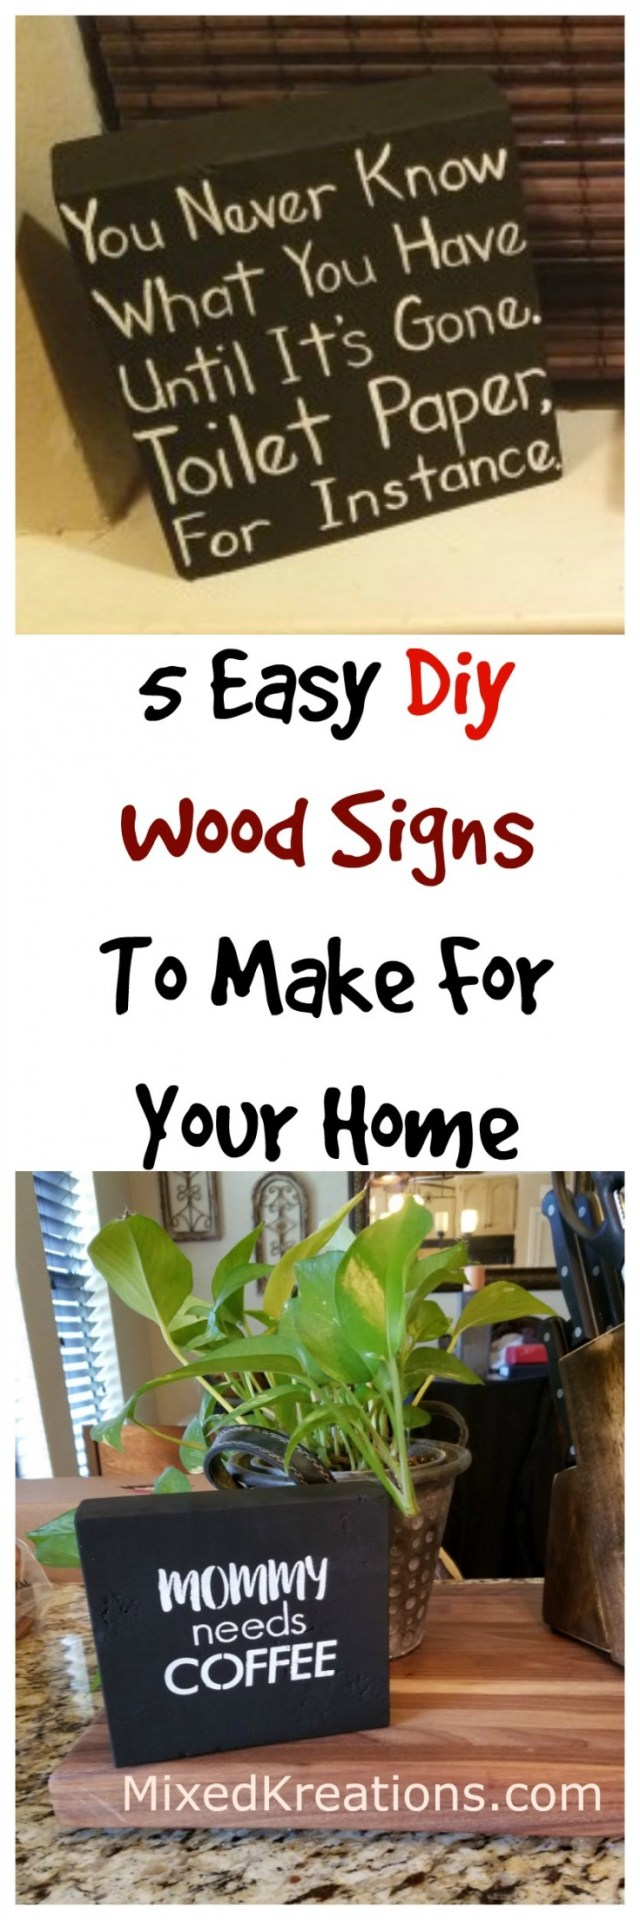 5 easy diy wood signs to make for your home | how to make wood signs #FarmhouseSigns #DiySigns #WoodSigns MixedKreations.com